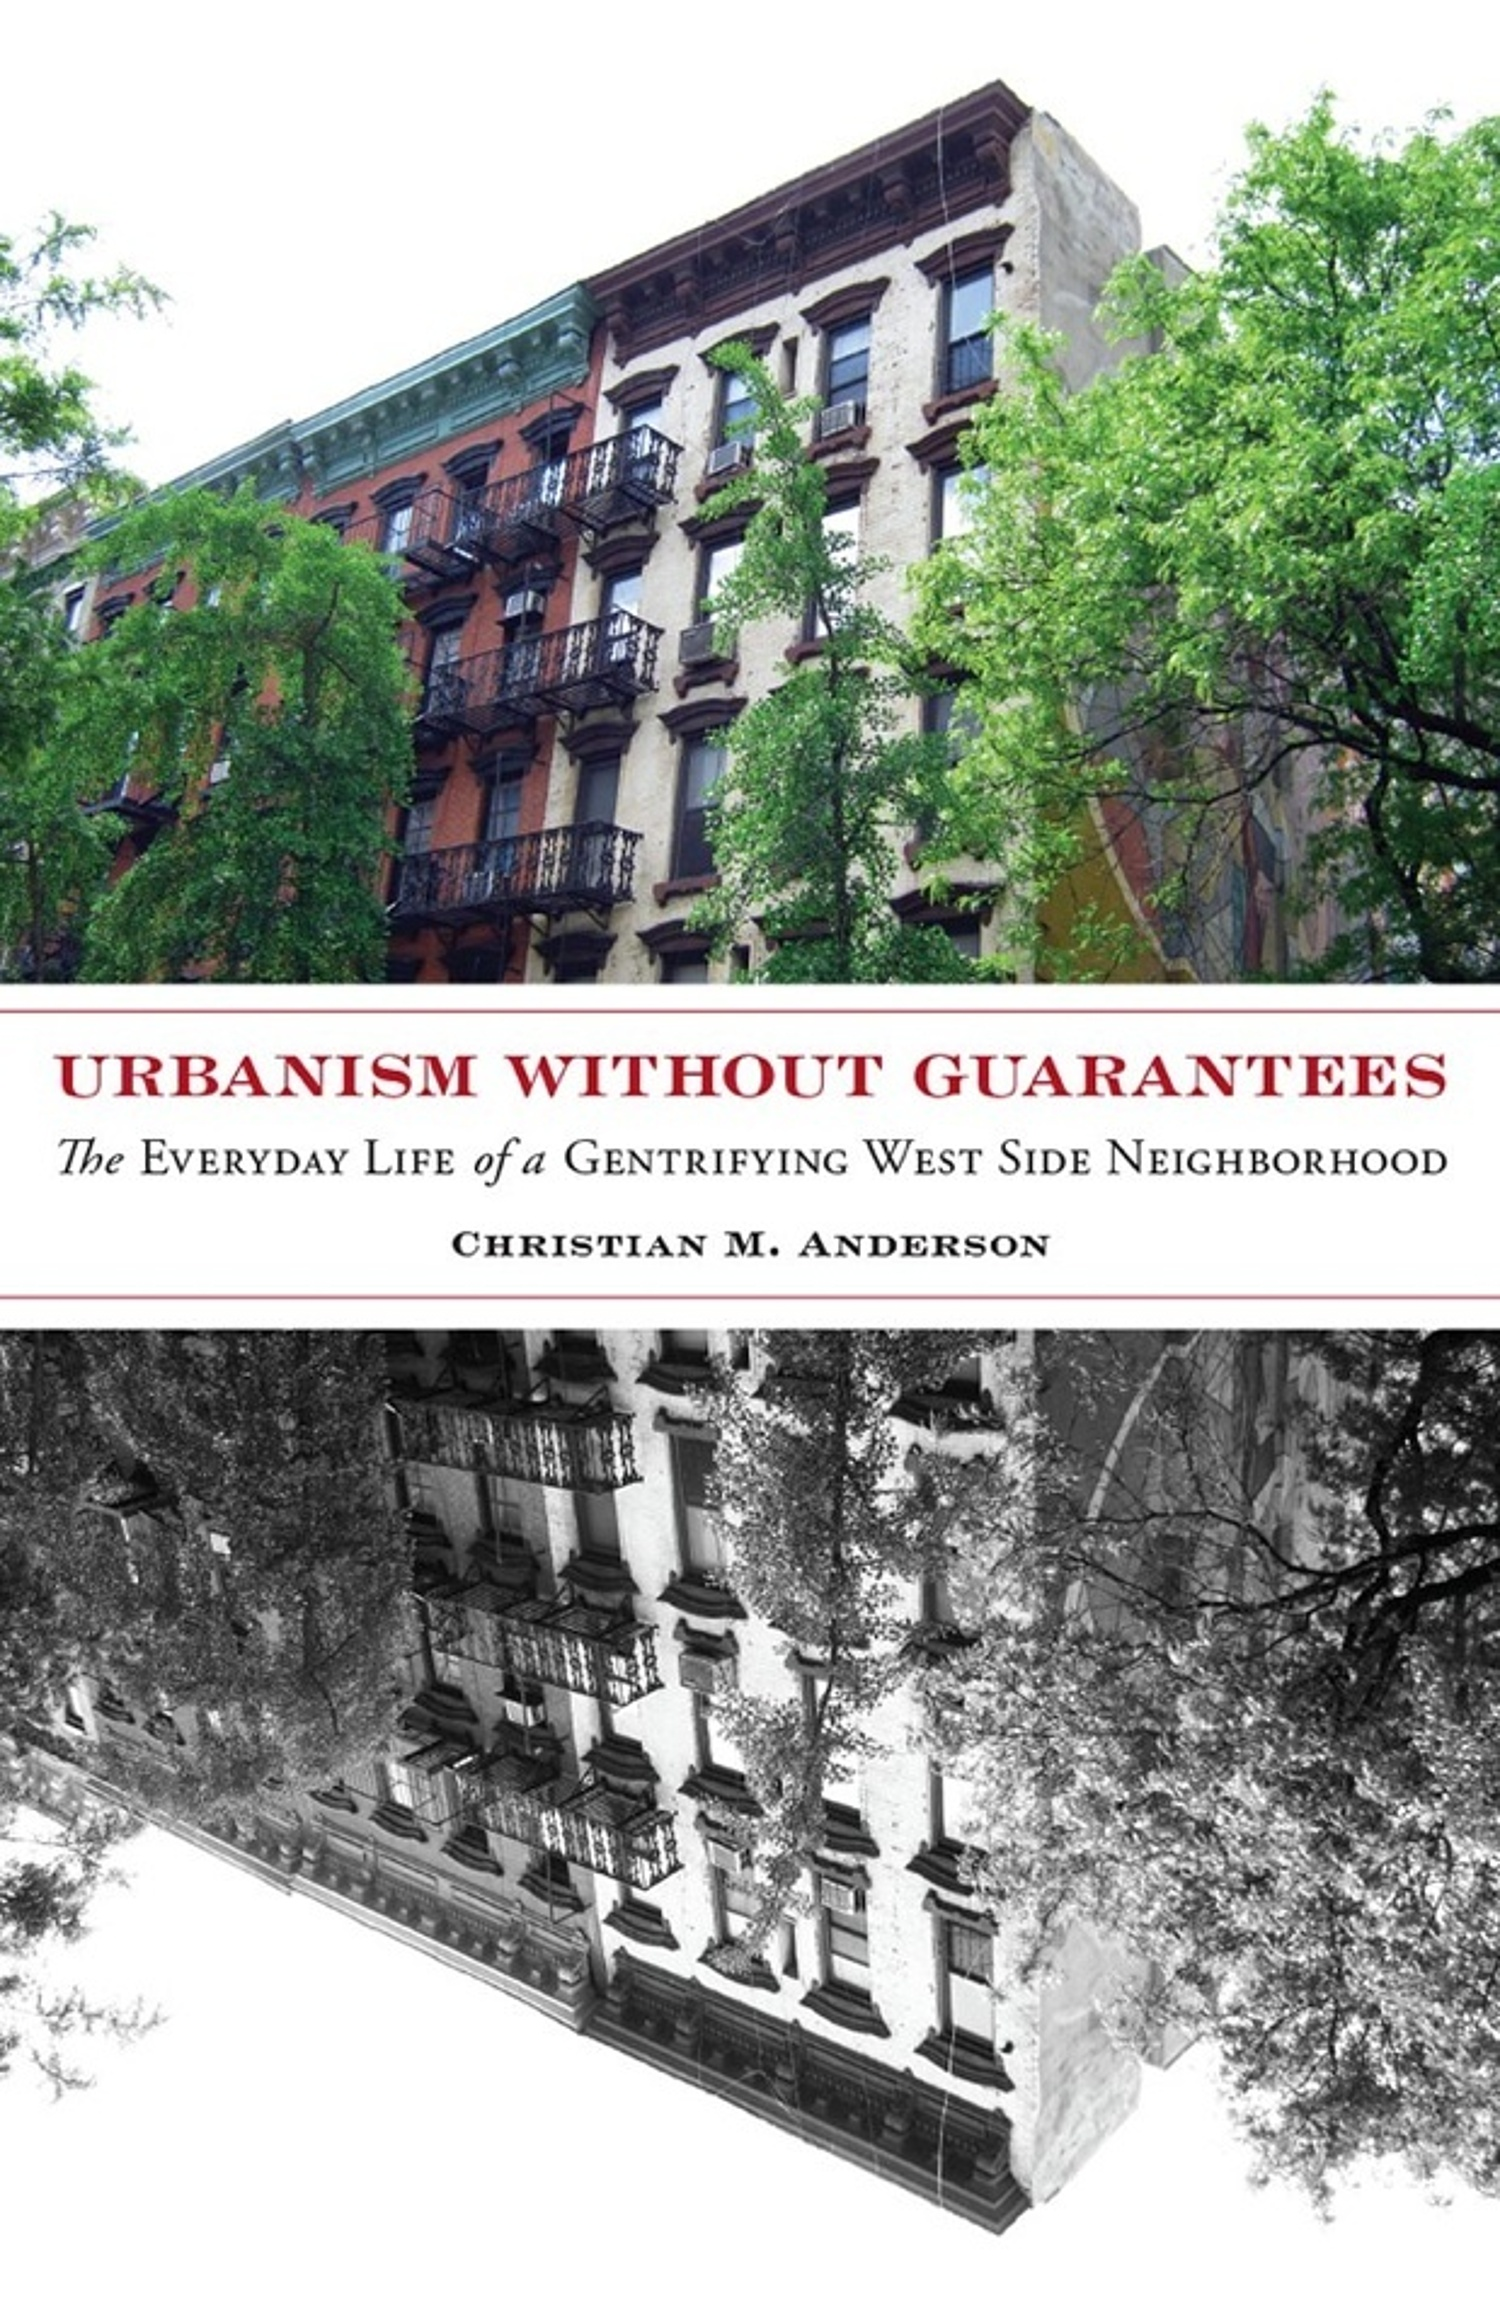 Urbanism without Guarantees: The Everyday Life of a Gentrifying West Side Neighborhood